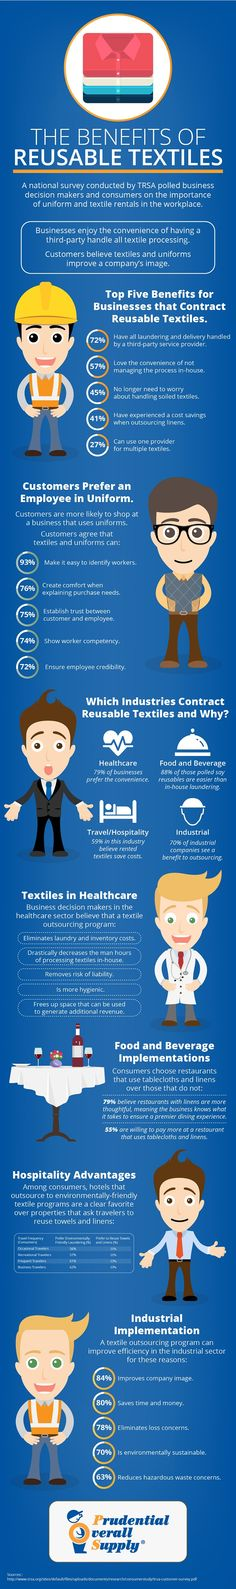 Clean Green Certified, Prudential Overall Supply uses less water & energy compared to home wash & disposables. Check out their infographic on the benefits of #reusable #textiles.